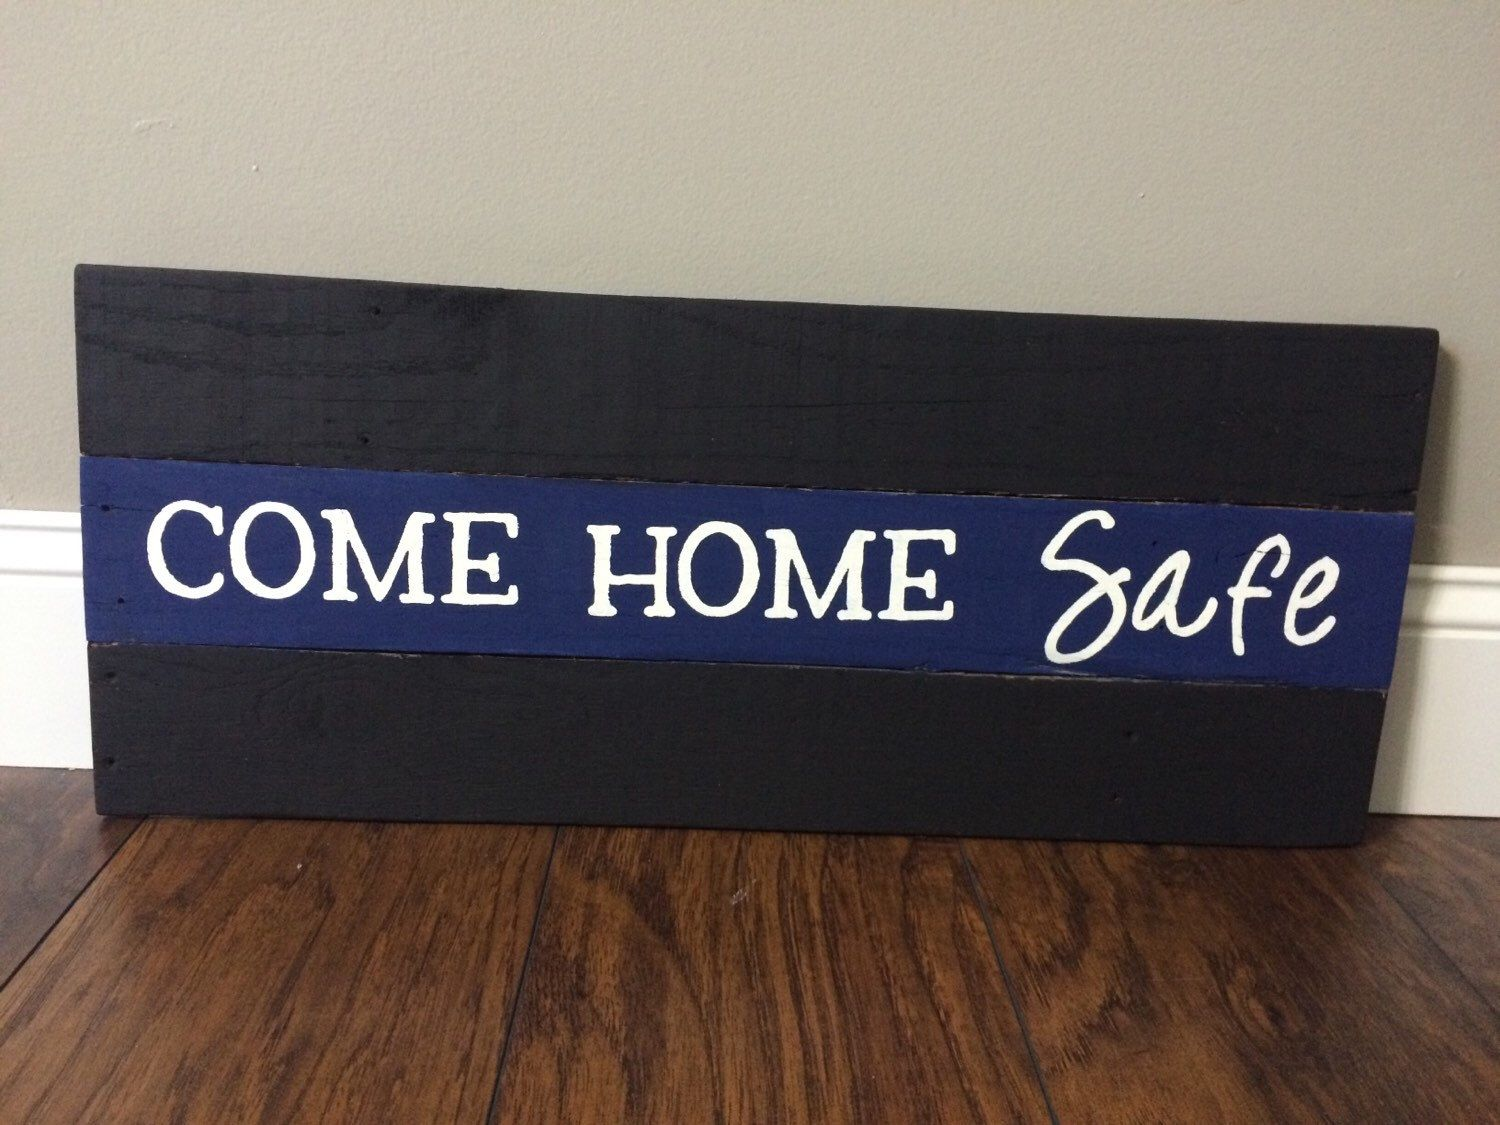 Project home safe